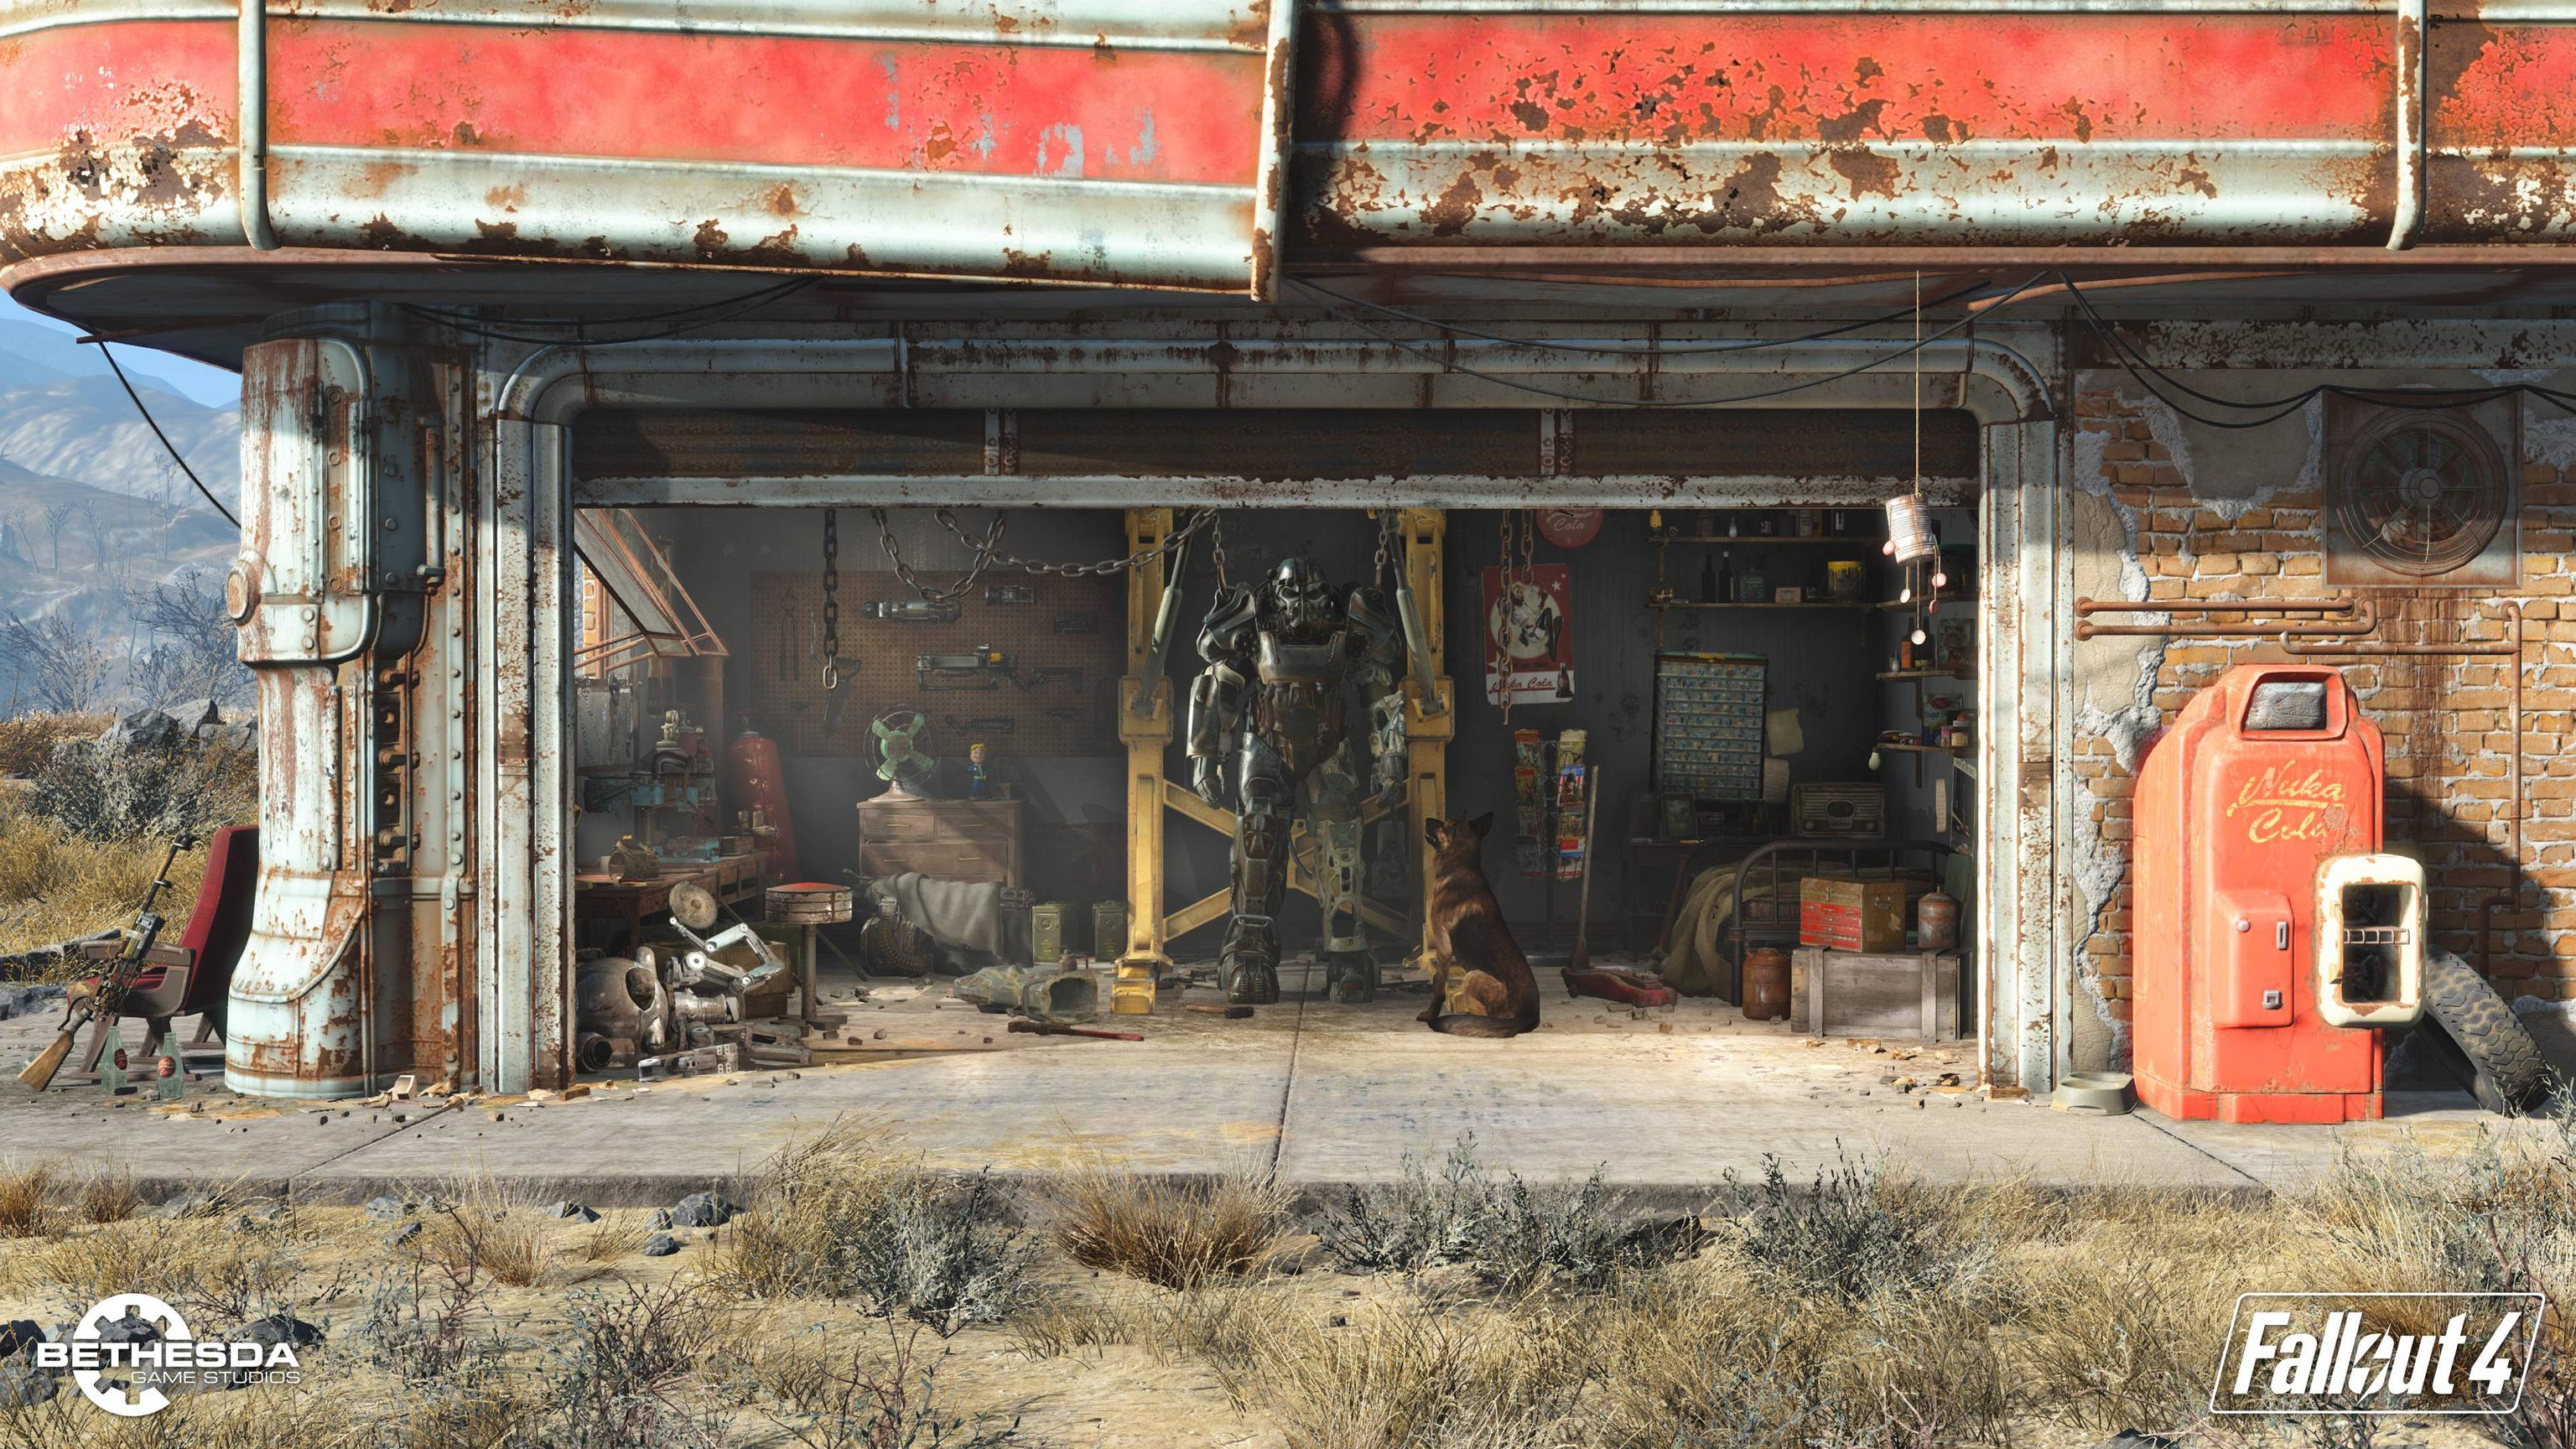 Fallout 4 feature